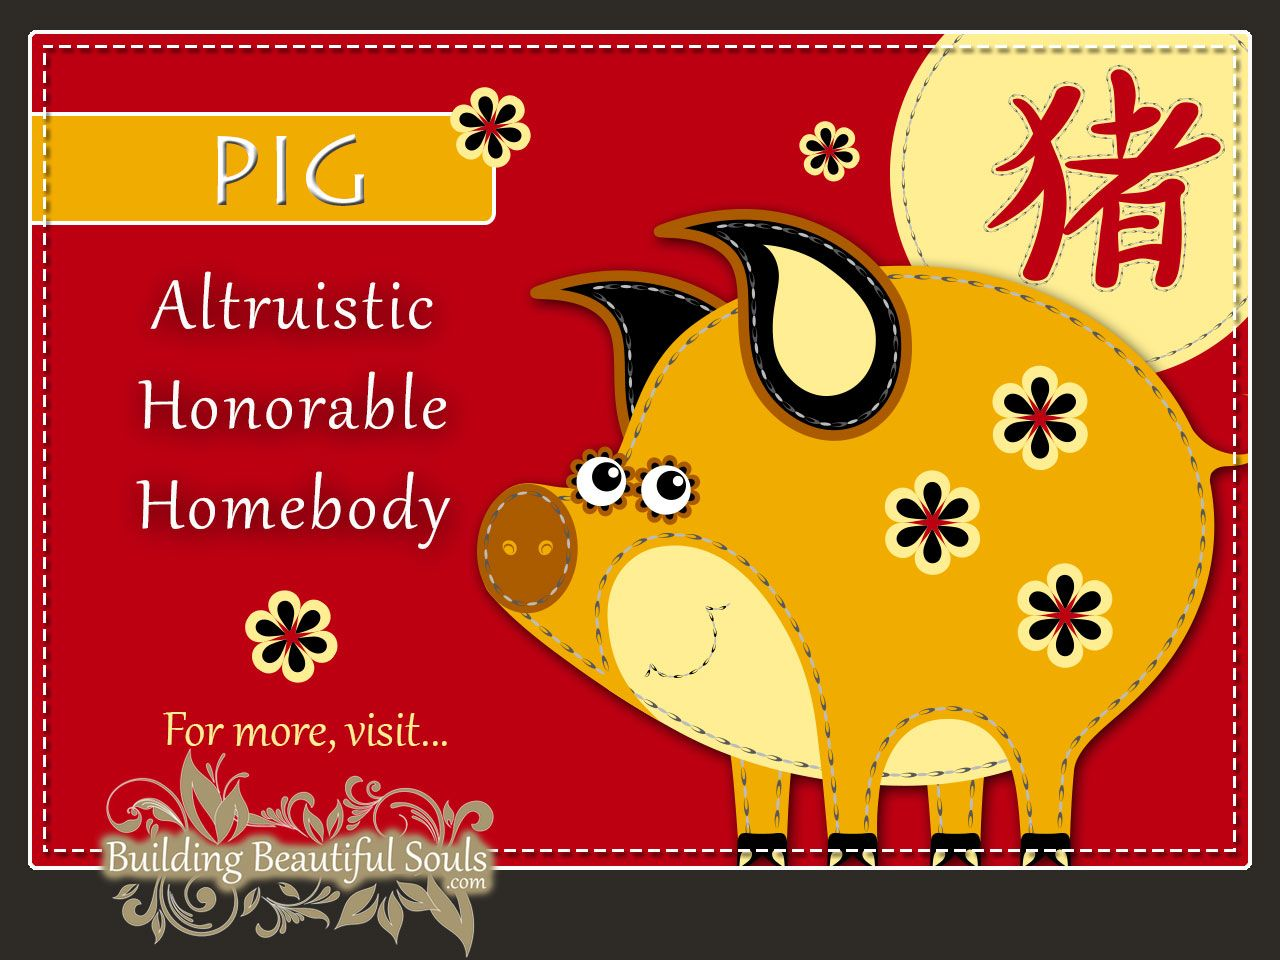 Chinese Zodiac Pig Chinese zodiac, Chinese zodiac signs